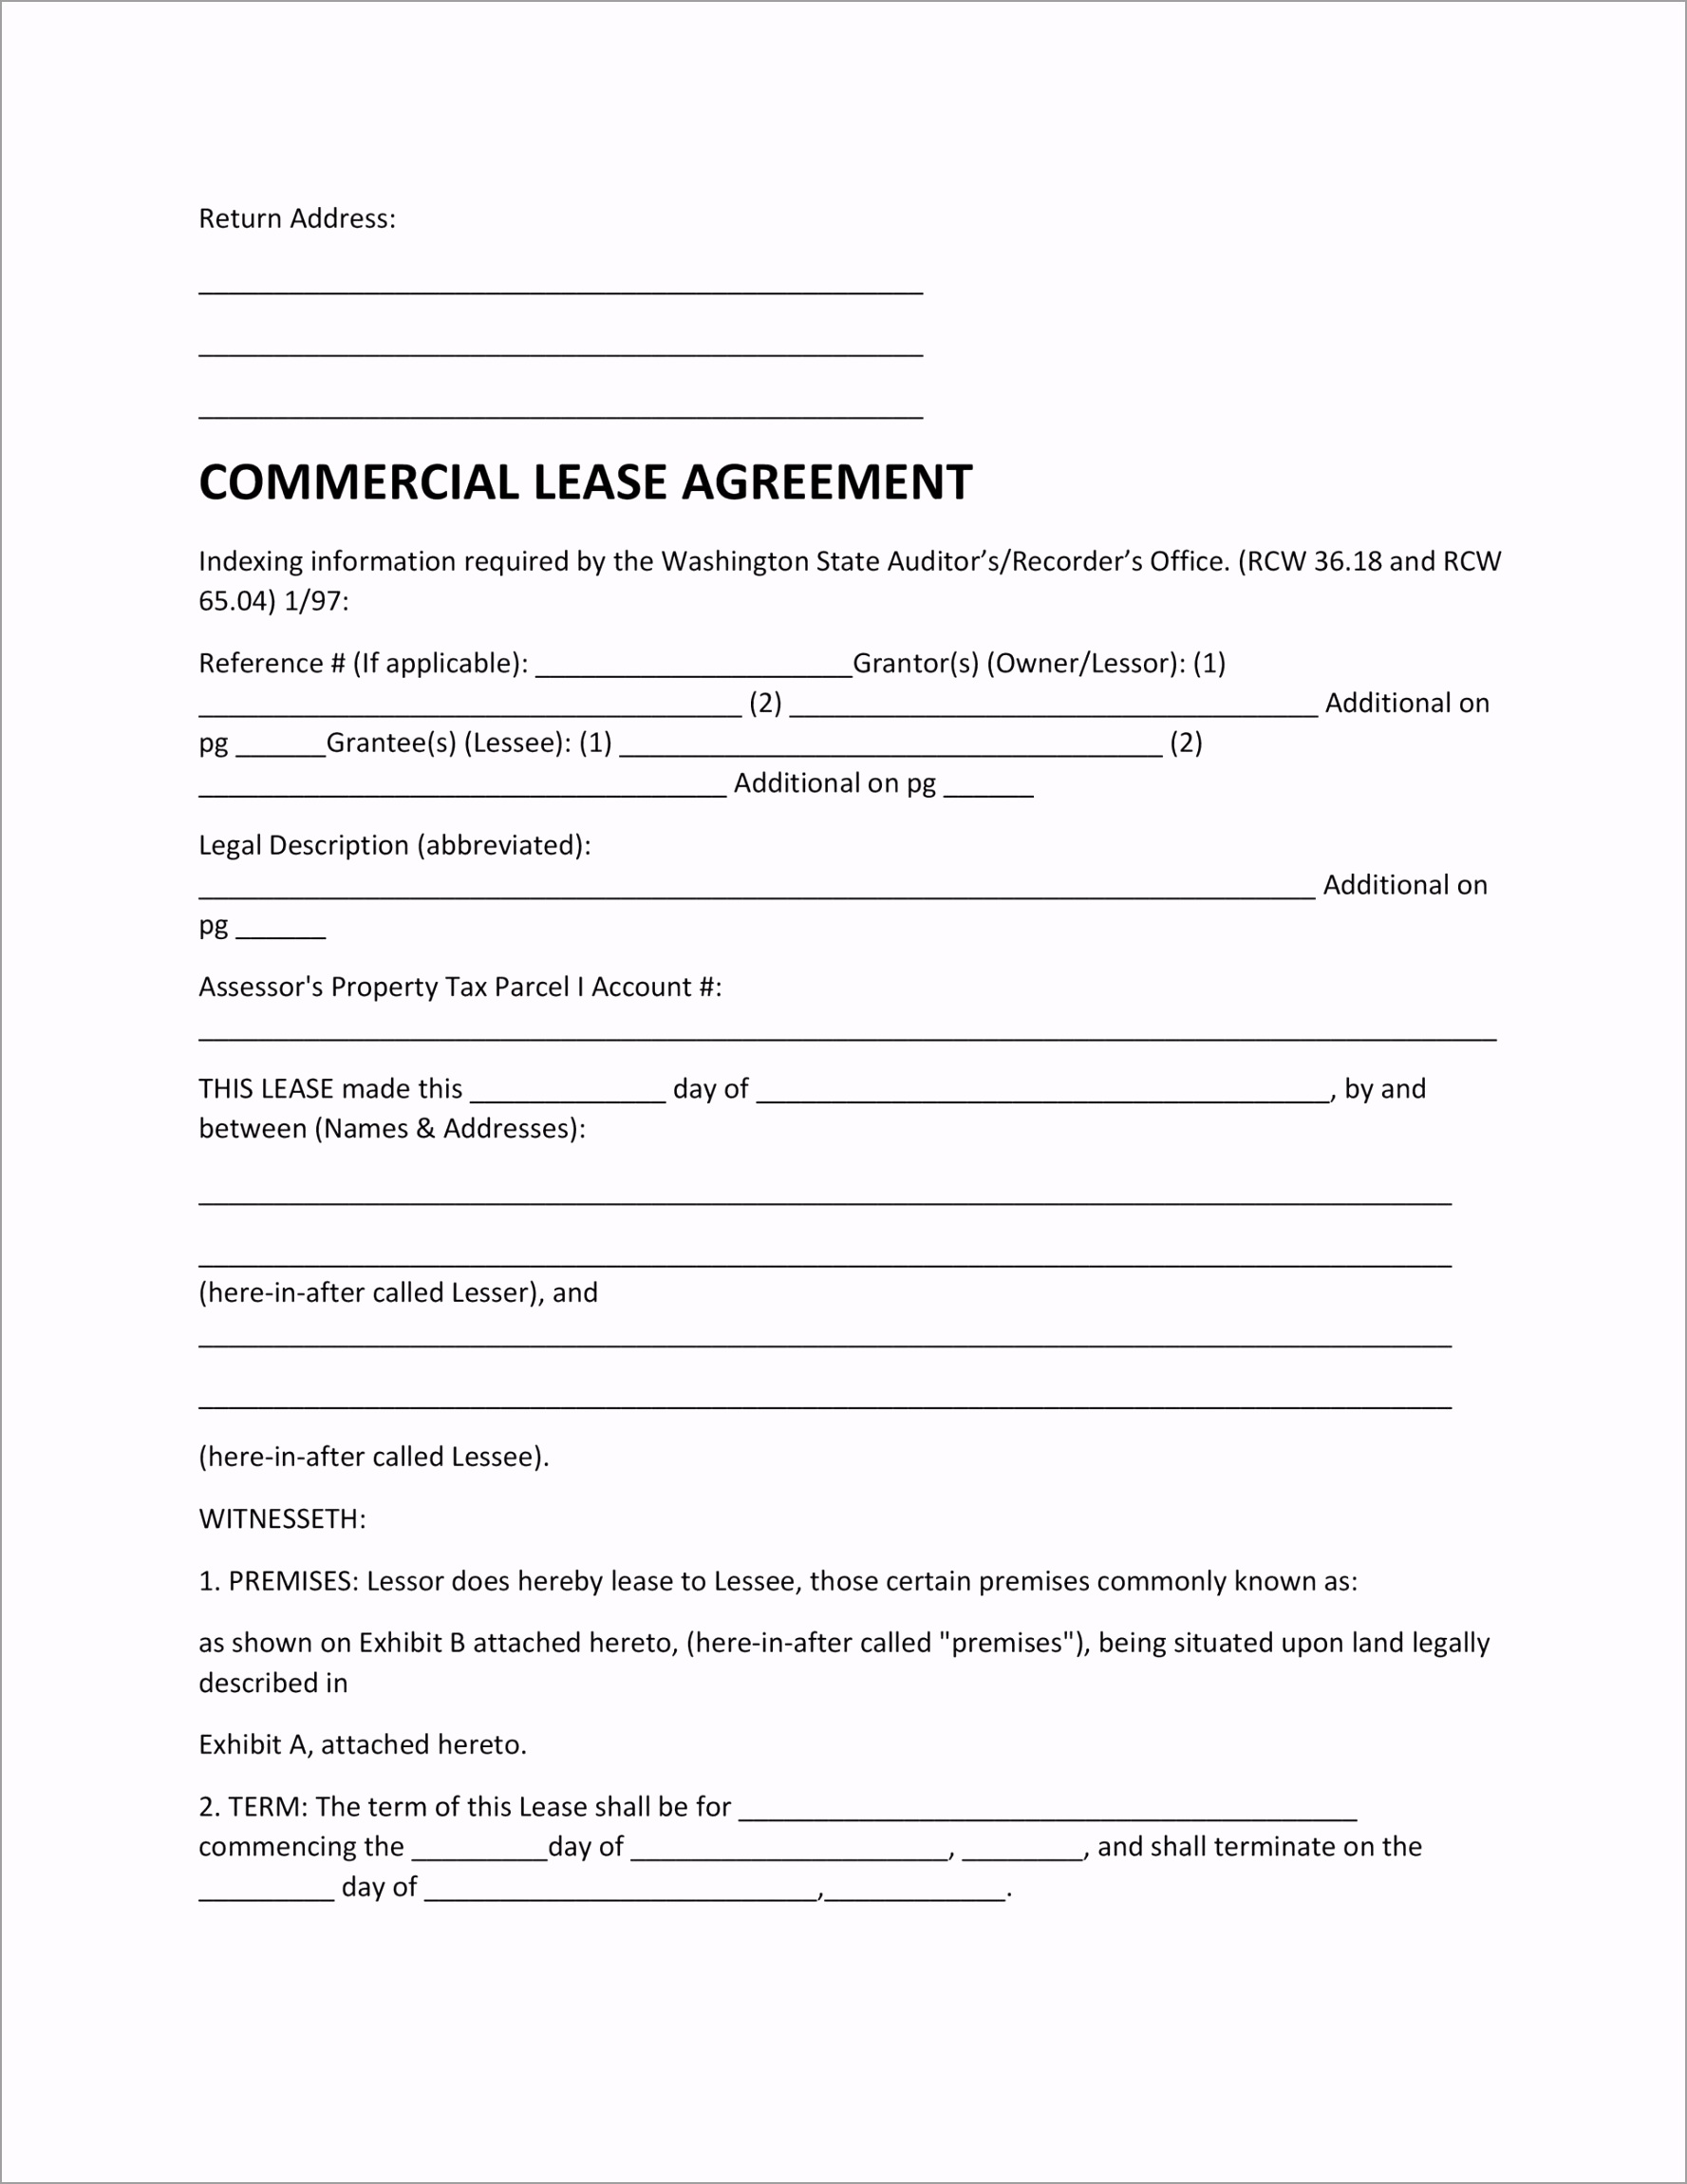 mercial Lease Agreement Template 17 wopne